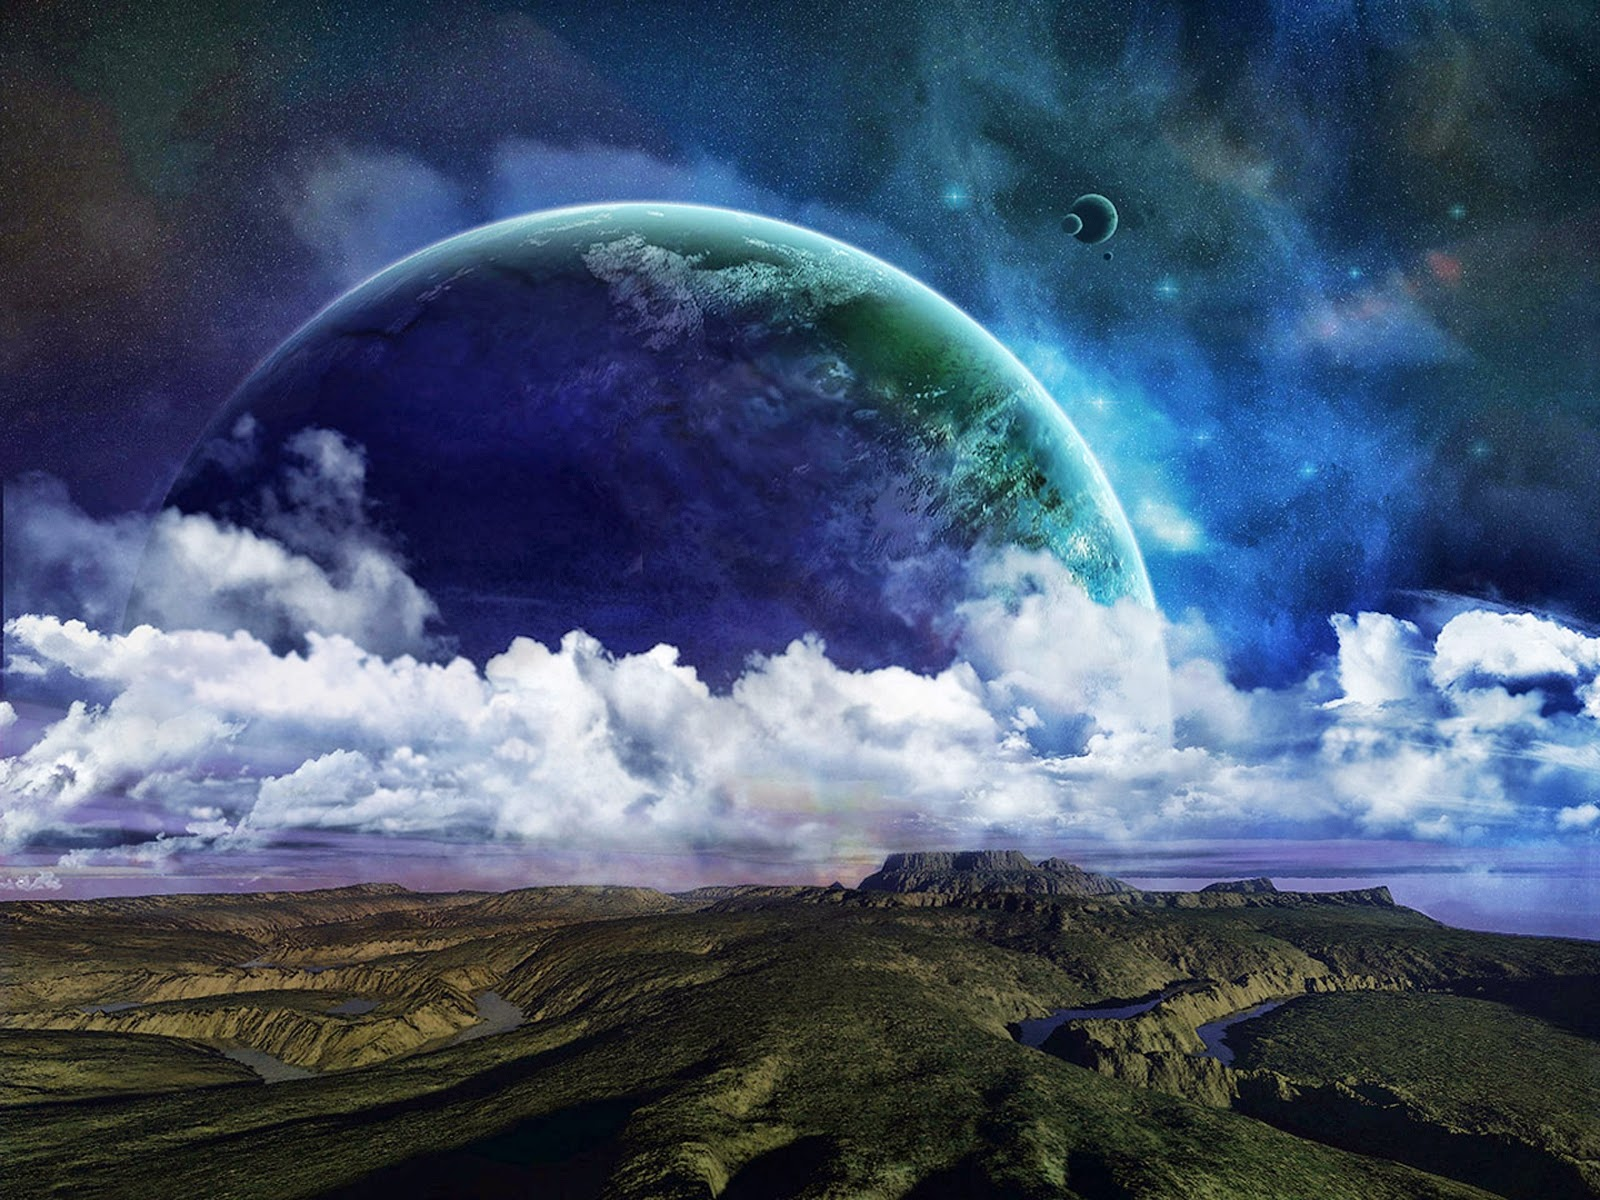 Get Epic Space Wallpaper And Make This For Your Desktop Tablet Or Smartphone Device Best Results You Can Choose Original Size To Be Easily